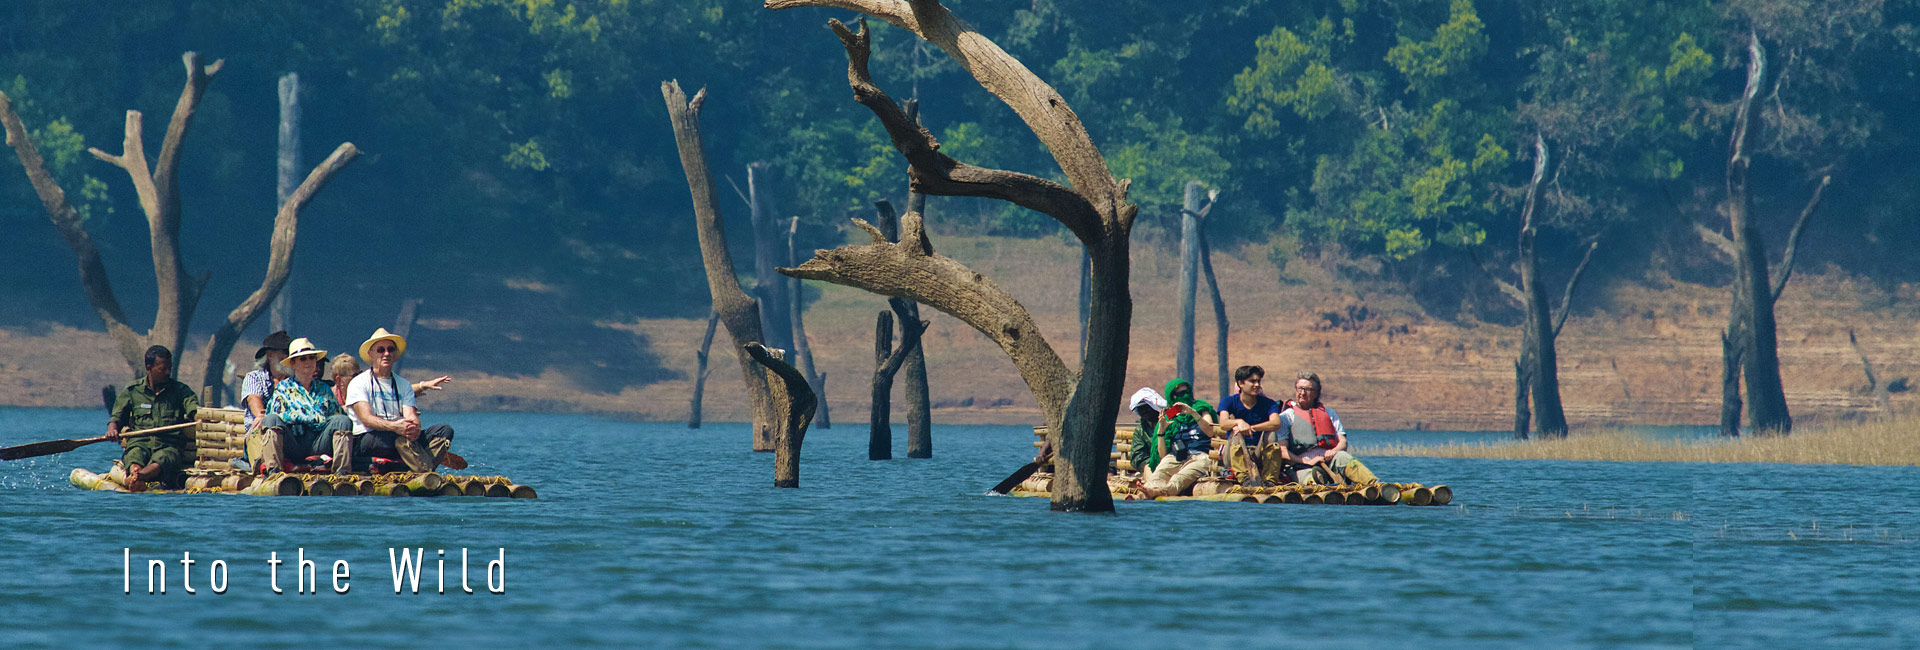 In to the Wild - Periyar Tiger Reserve